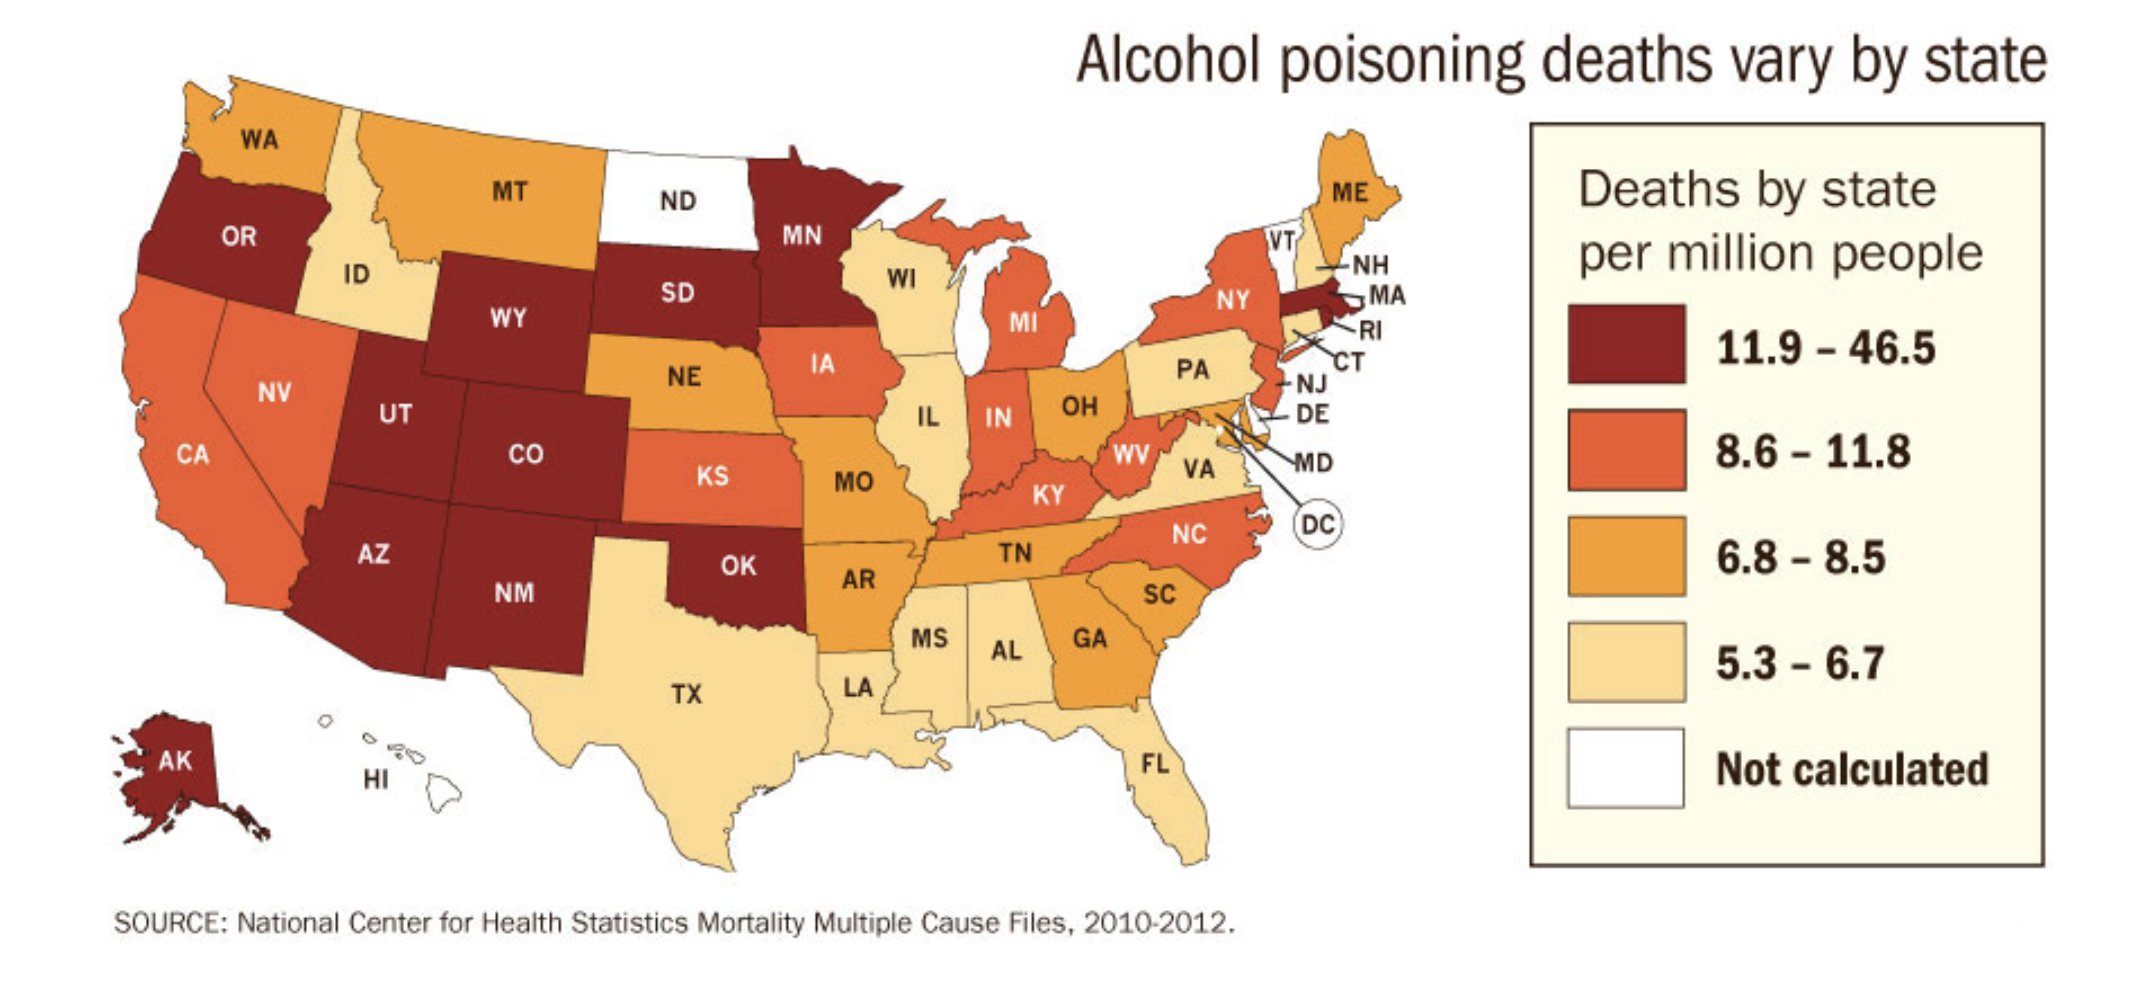 Alcohol poisonings by state